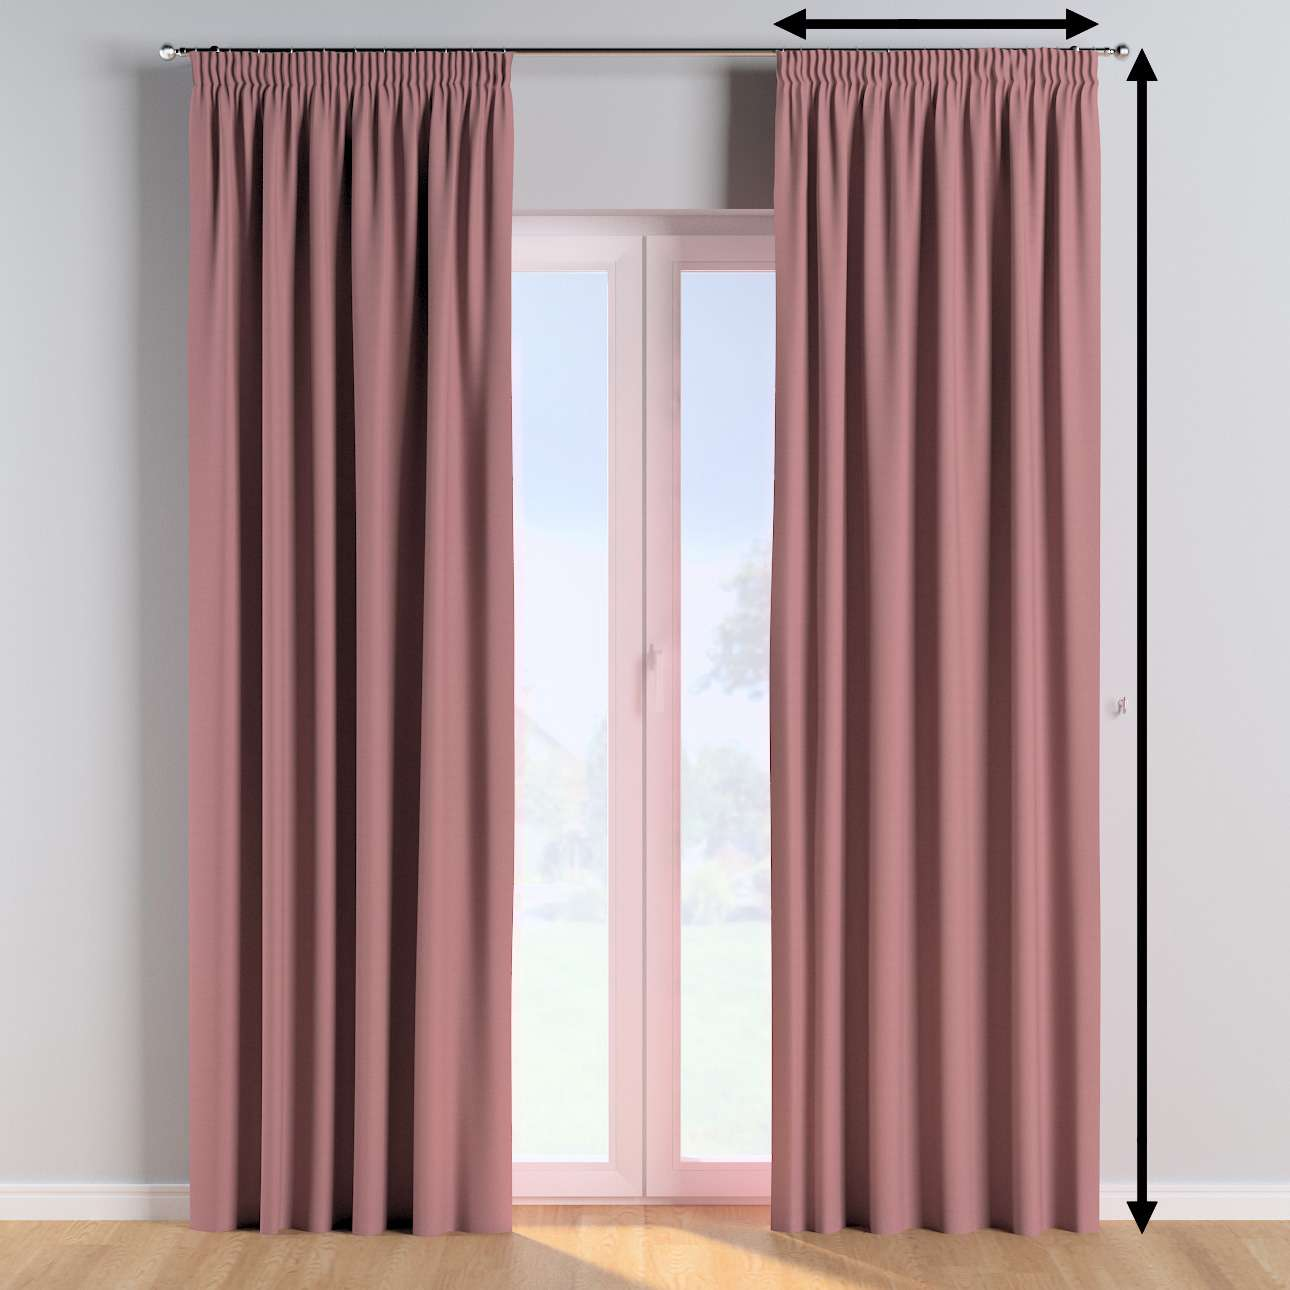 Pencil pleat curtains in collection Cotton Story, fabric: 702-43